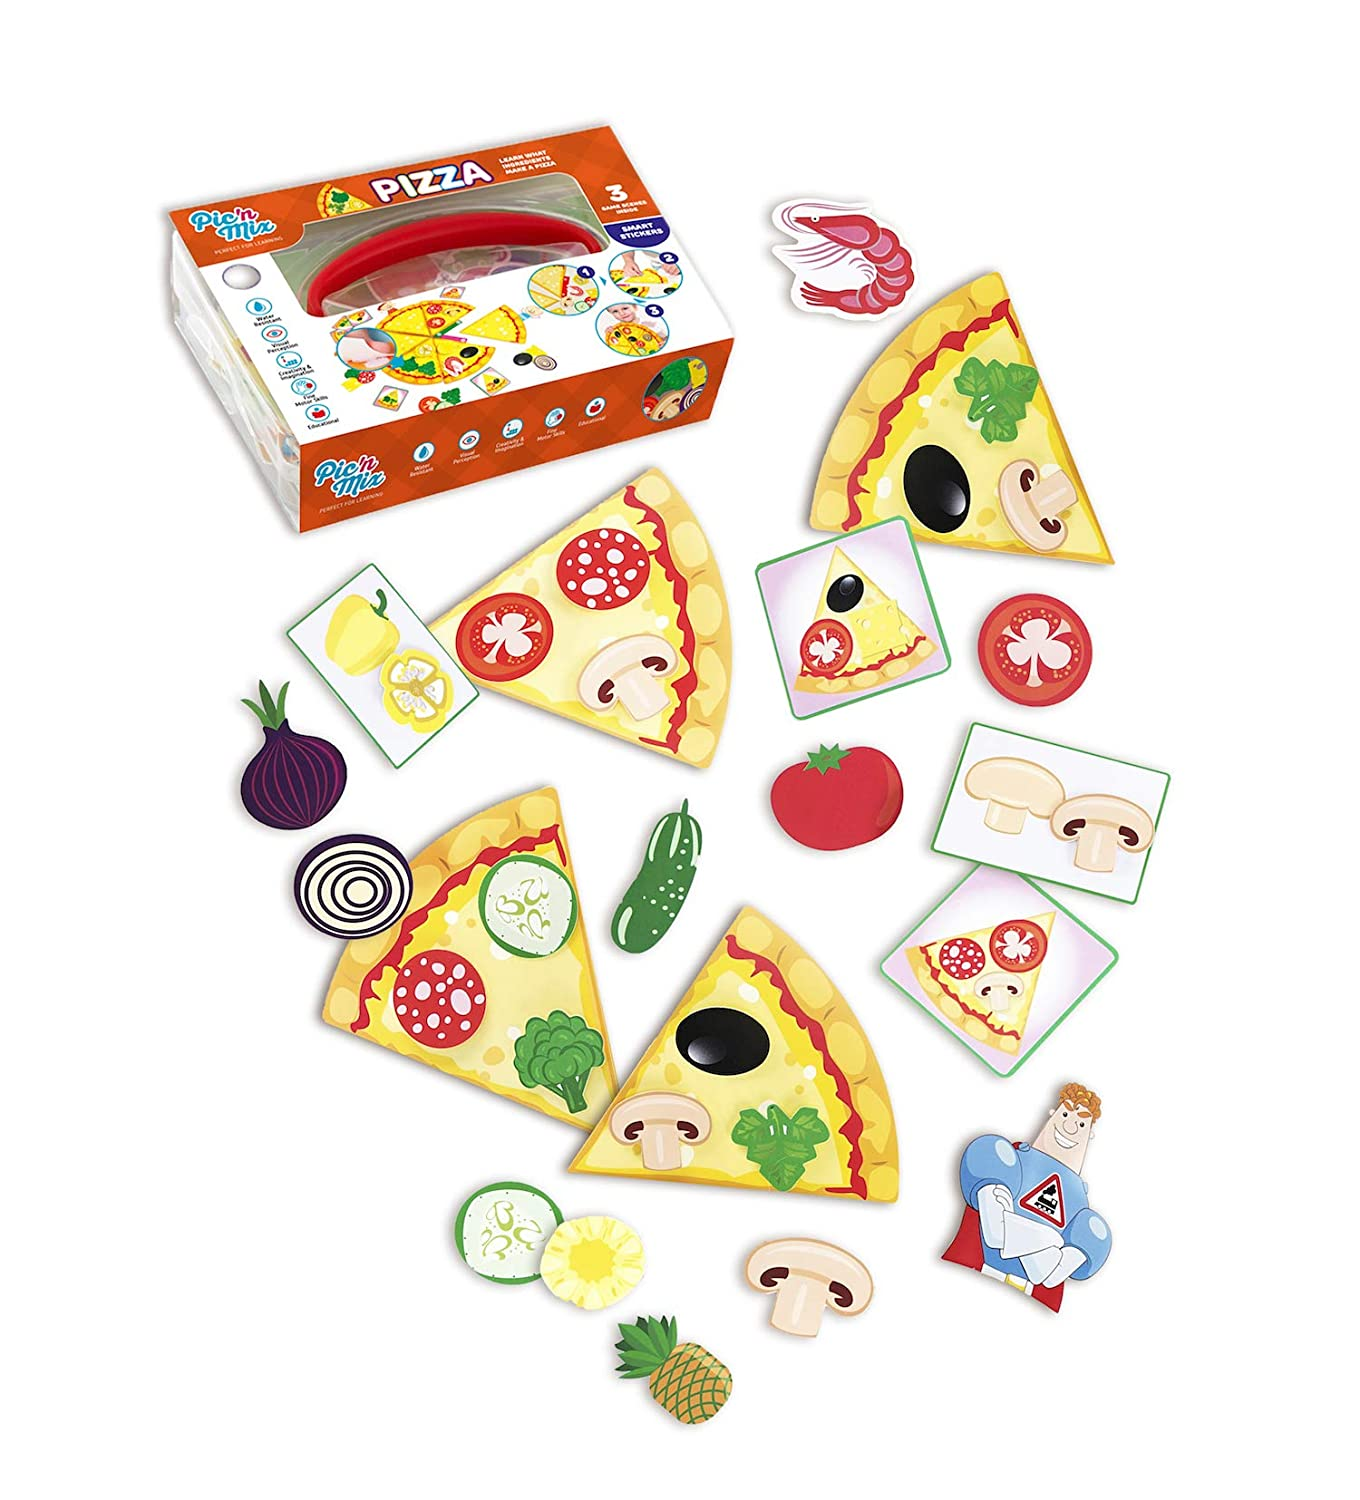 Pizza Puzzles for Kids | Picnmix Matching Game for Toddlers 2 Years and Up. Educational Board Game | Preschool Learning Toy. Fine Motor Skills Toy for Boys and Girls